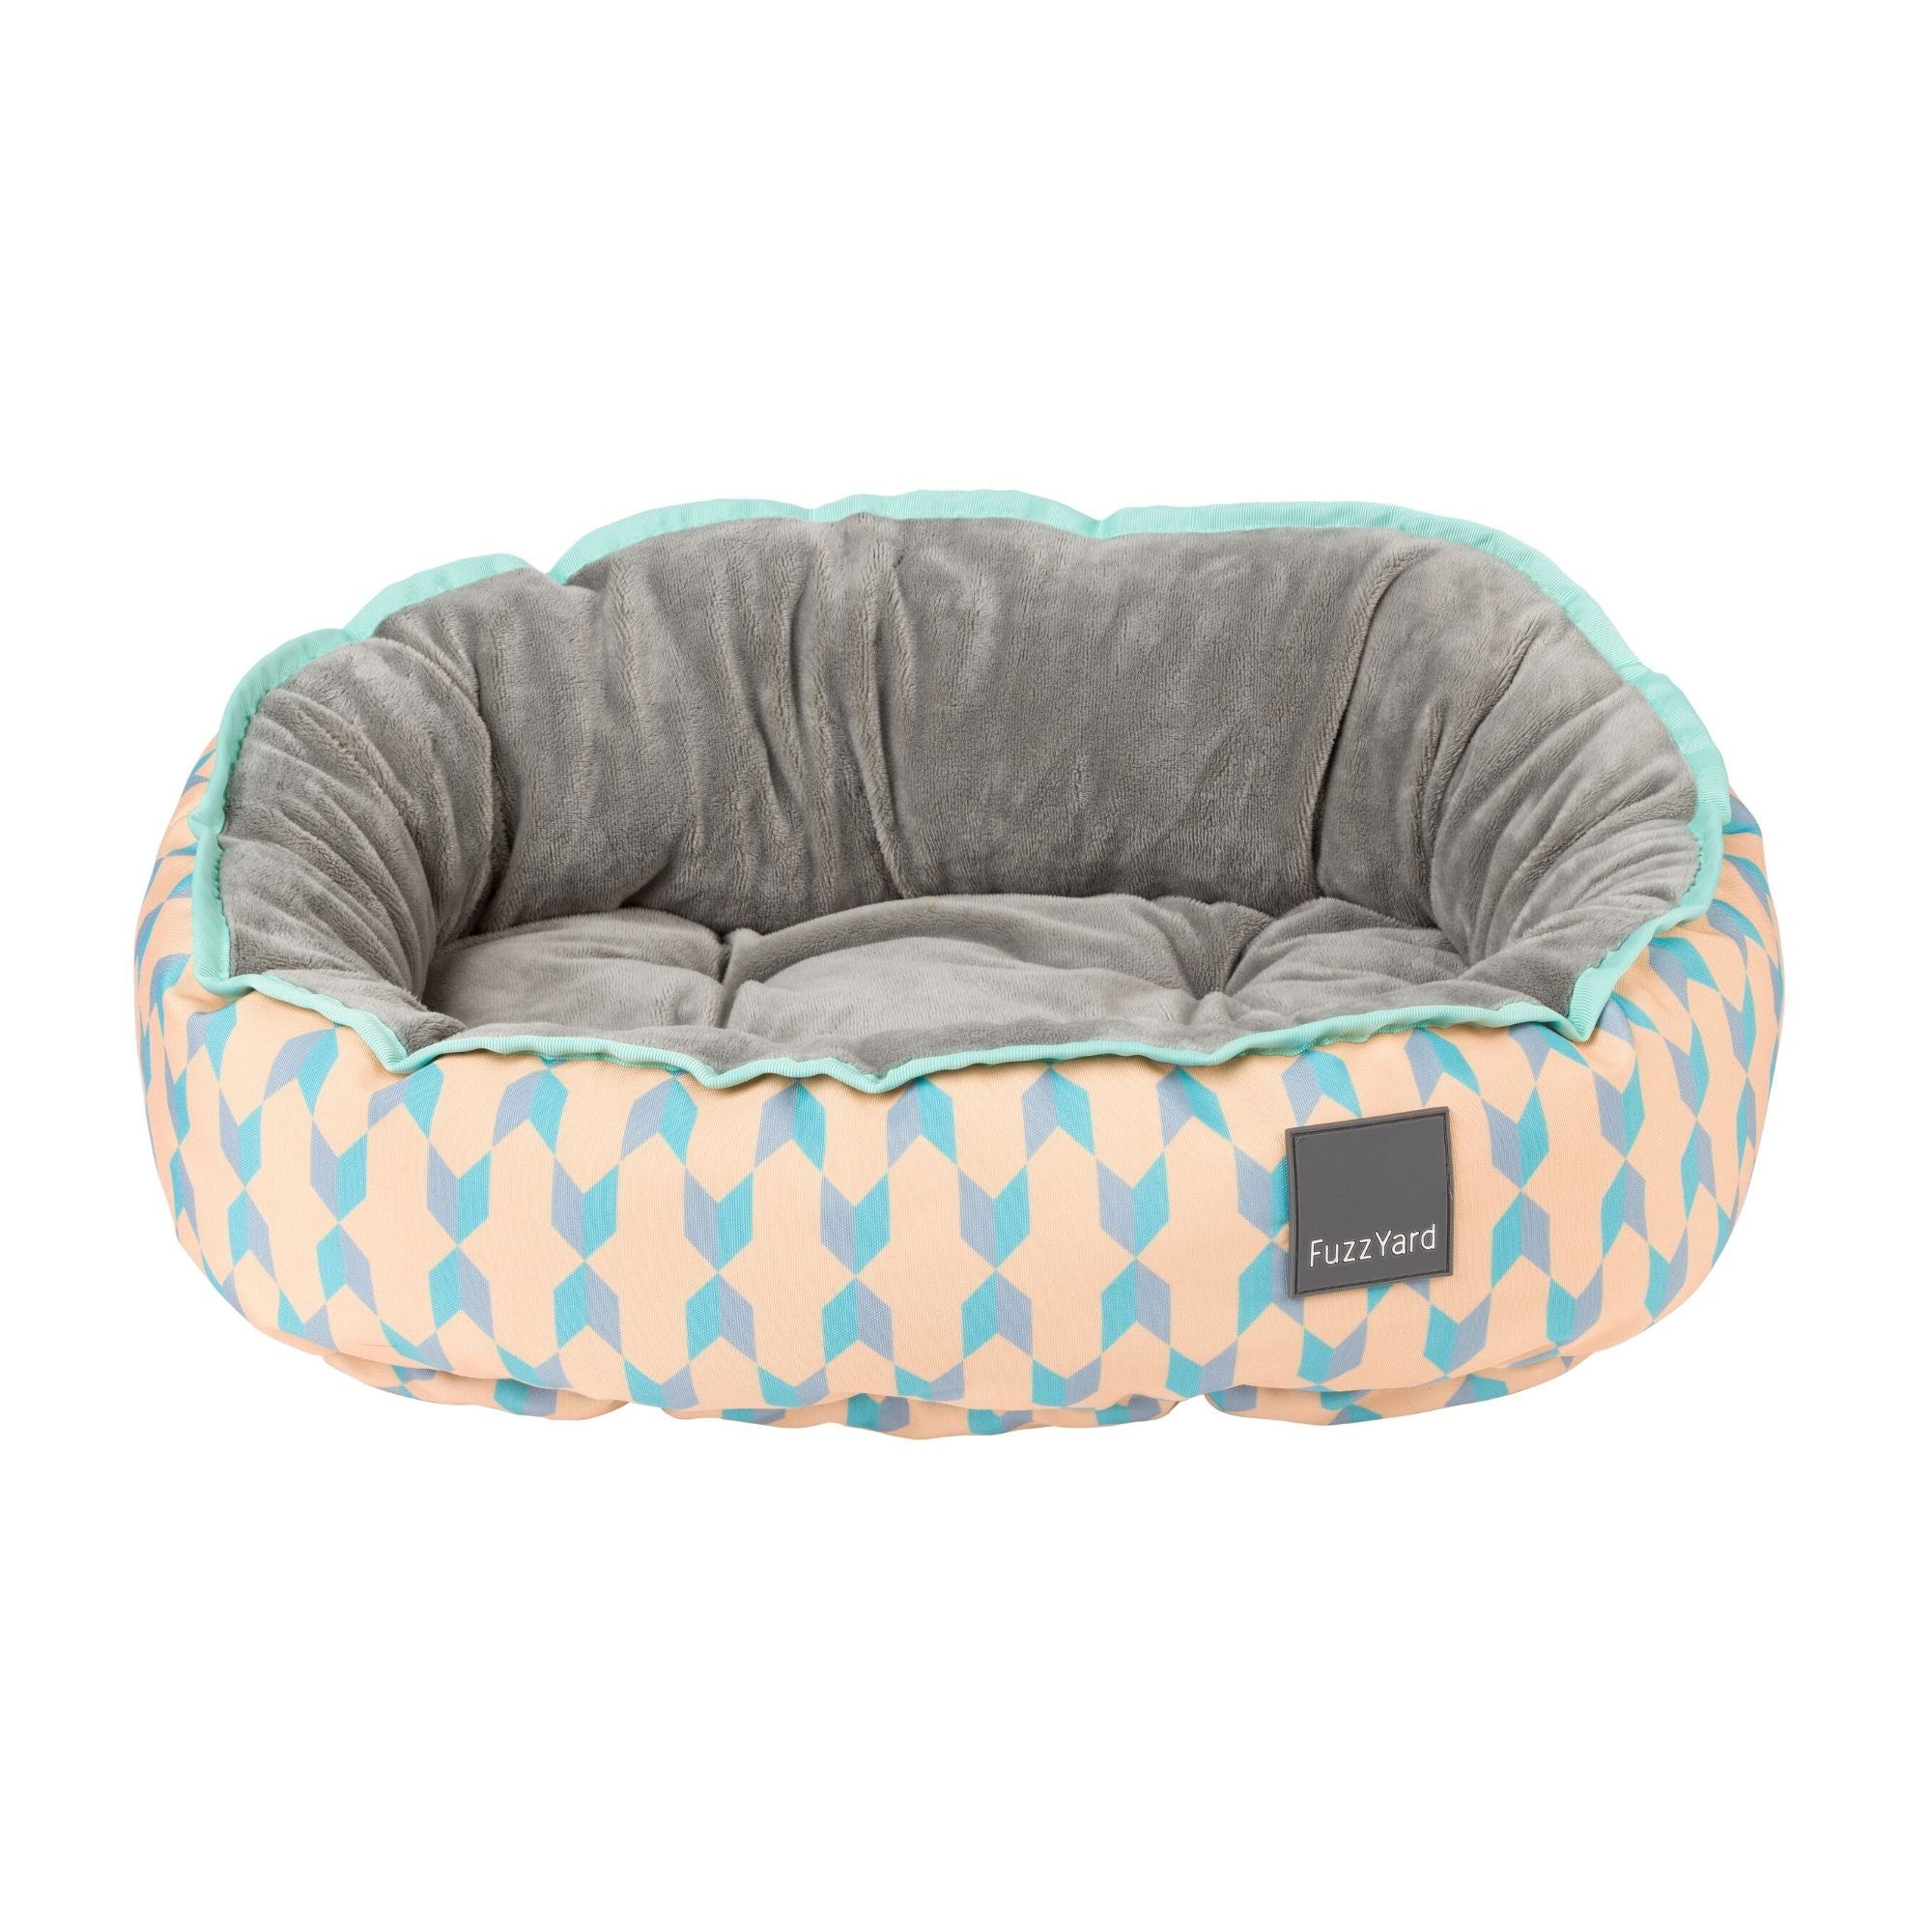 Fuzzyard Chelsea Dog Bed, Reversible Fabrics | Barks & Bunnies